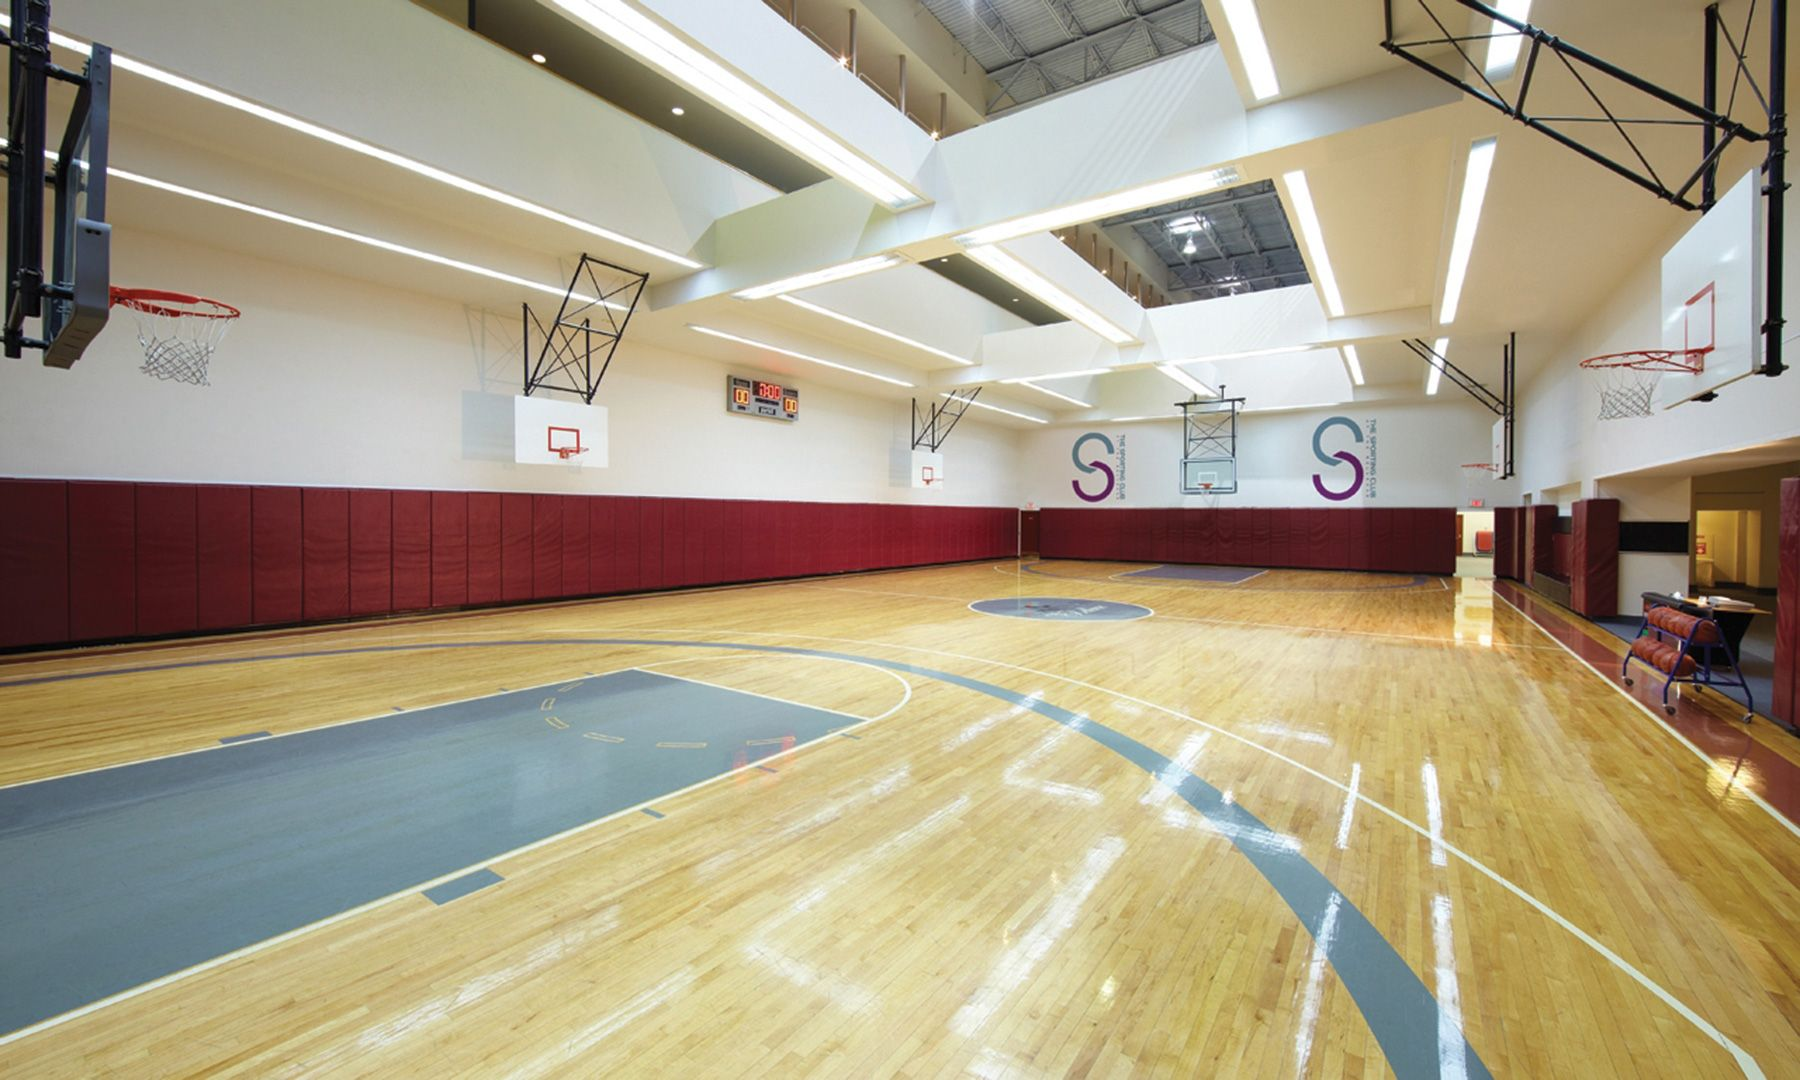 The Most Expensive Luxury Gyms In The U S Dujour Basketball Game Tickets Nba Basketball Court Basketball Court Size